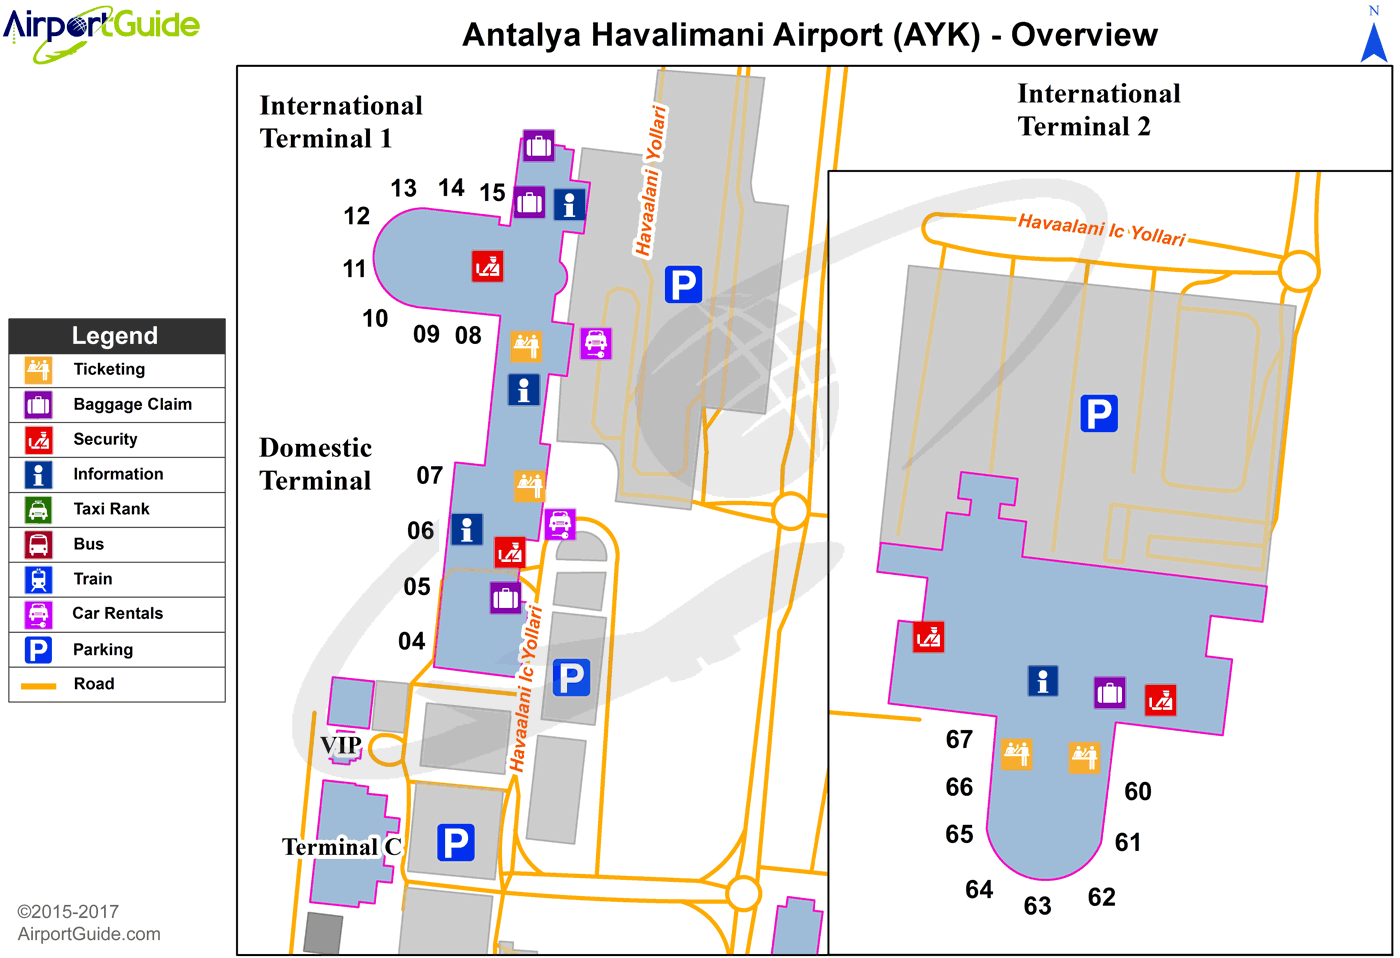 Honolulu Daniel K Inouye International HNL Airport Terminal Map